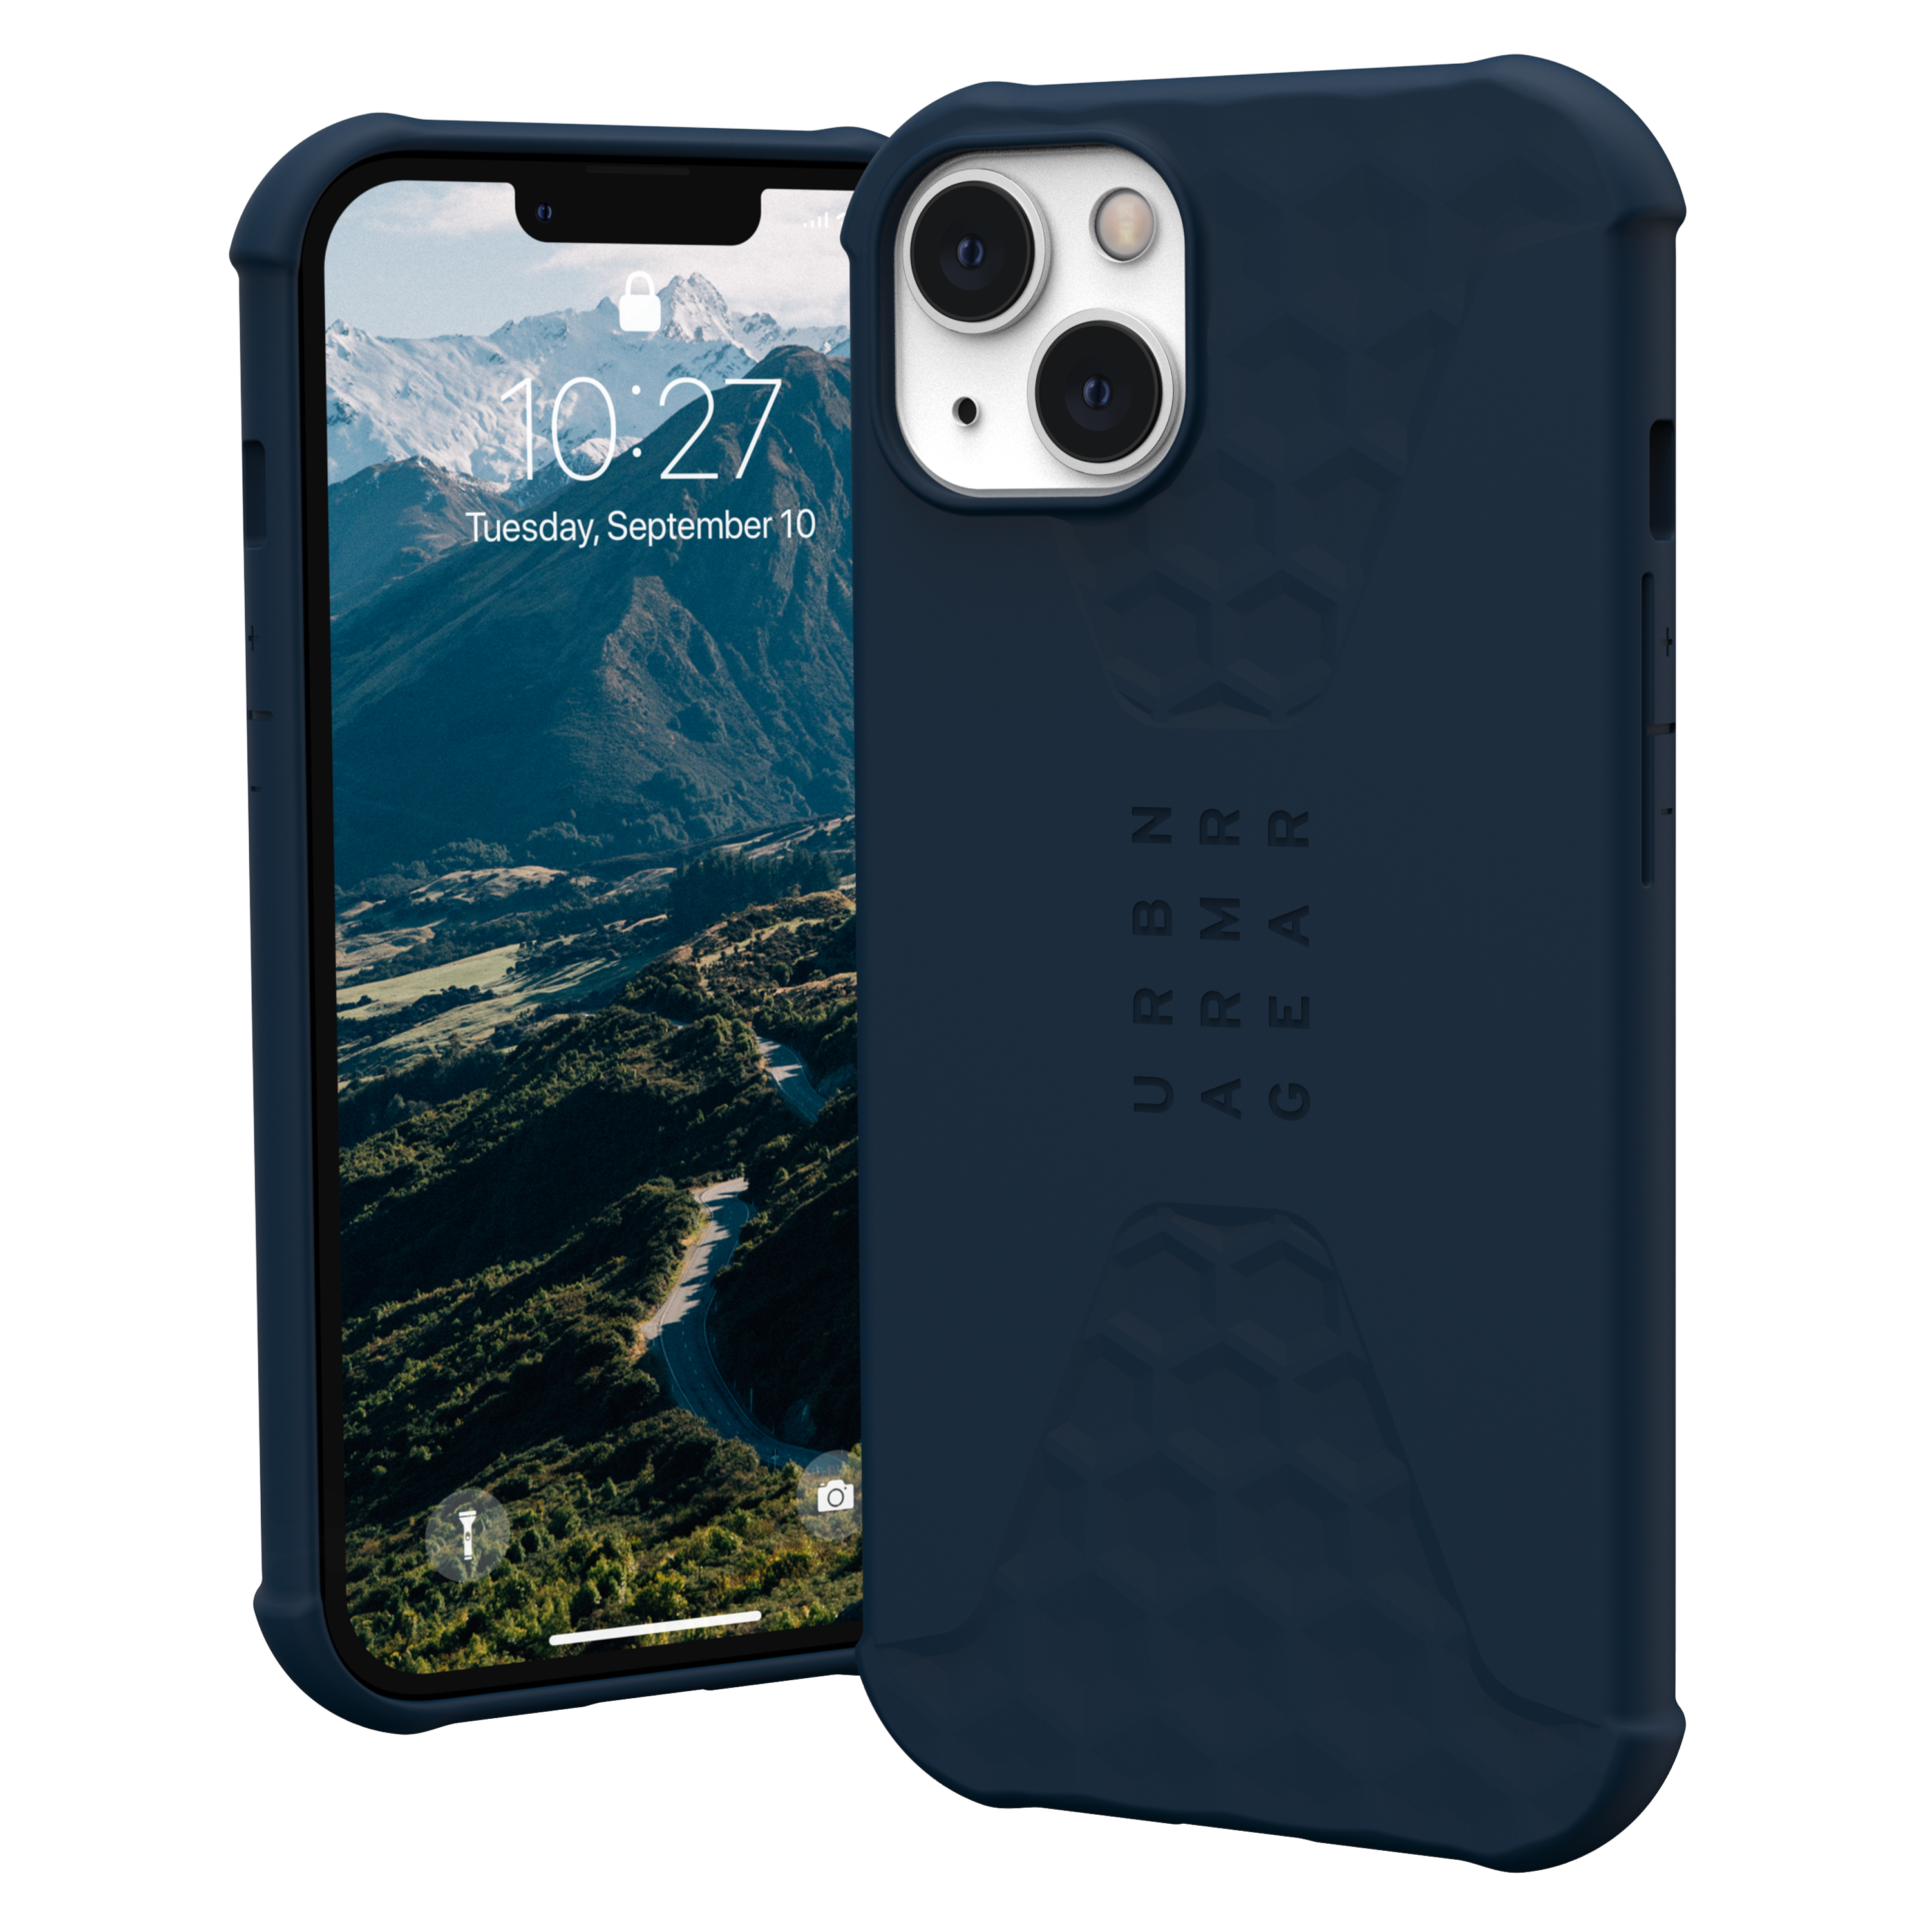 wholesale cellphone accessories UAG STANDARD ISSUE CASES